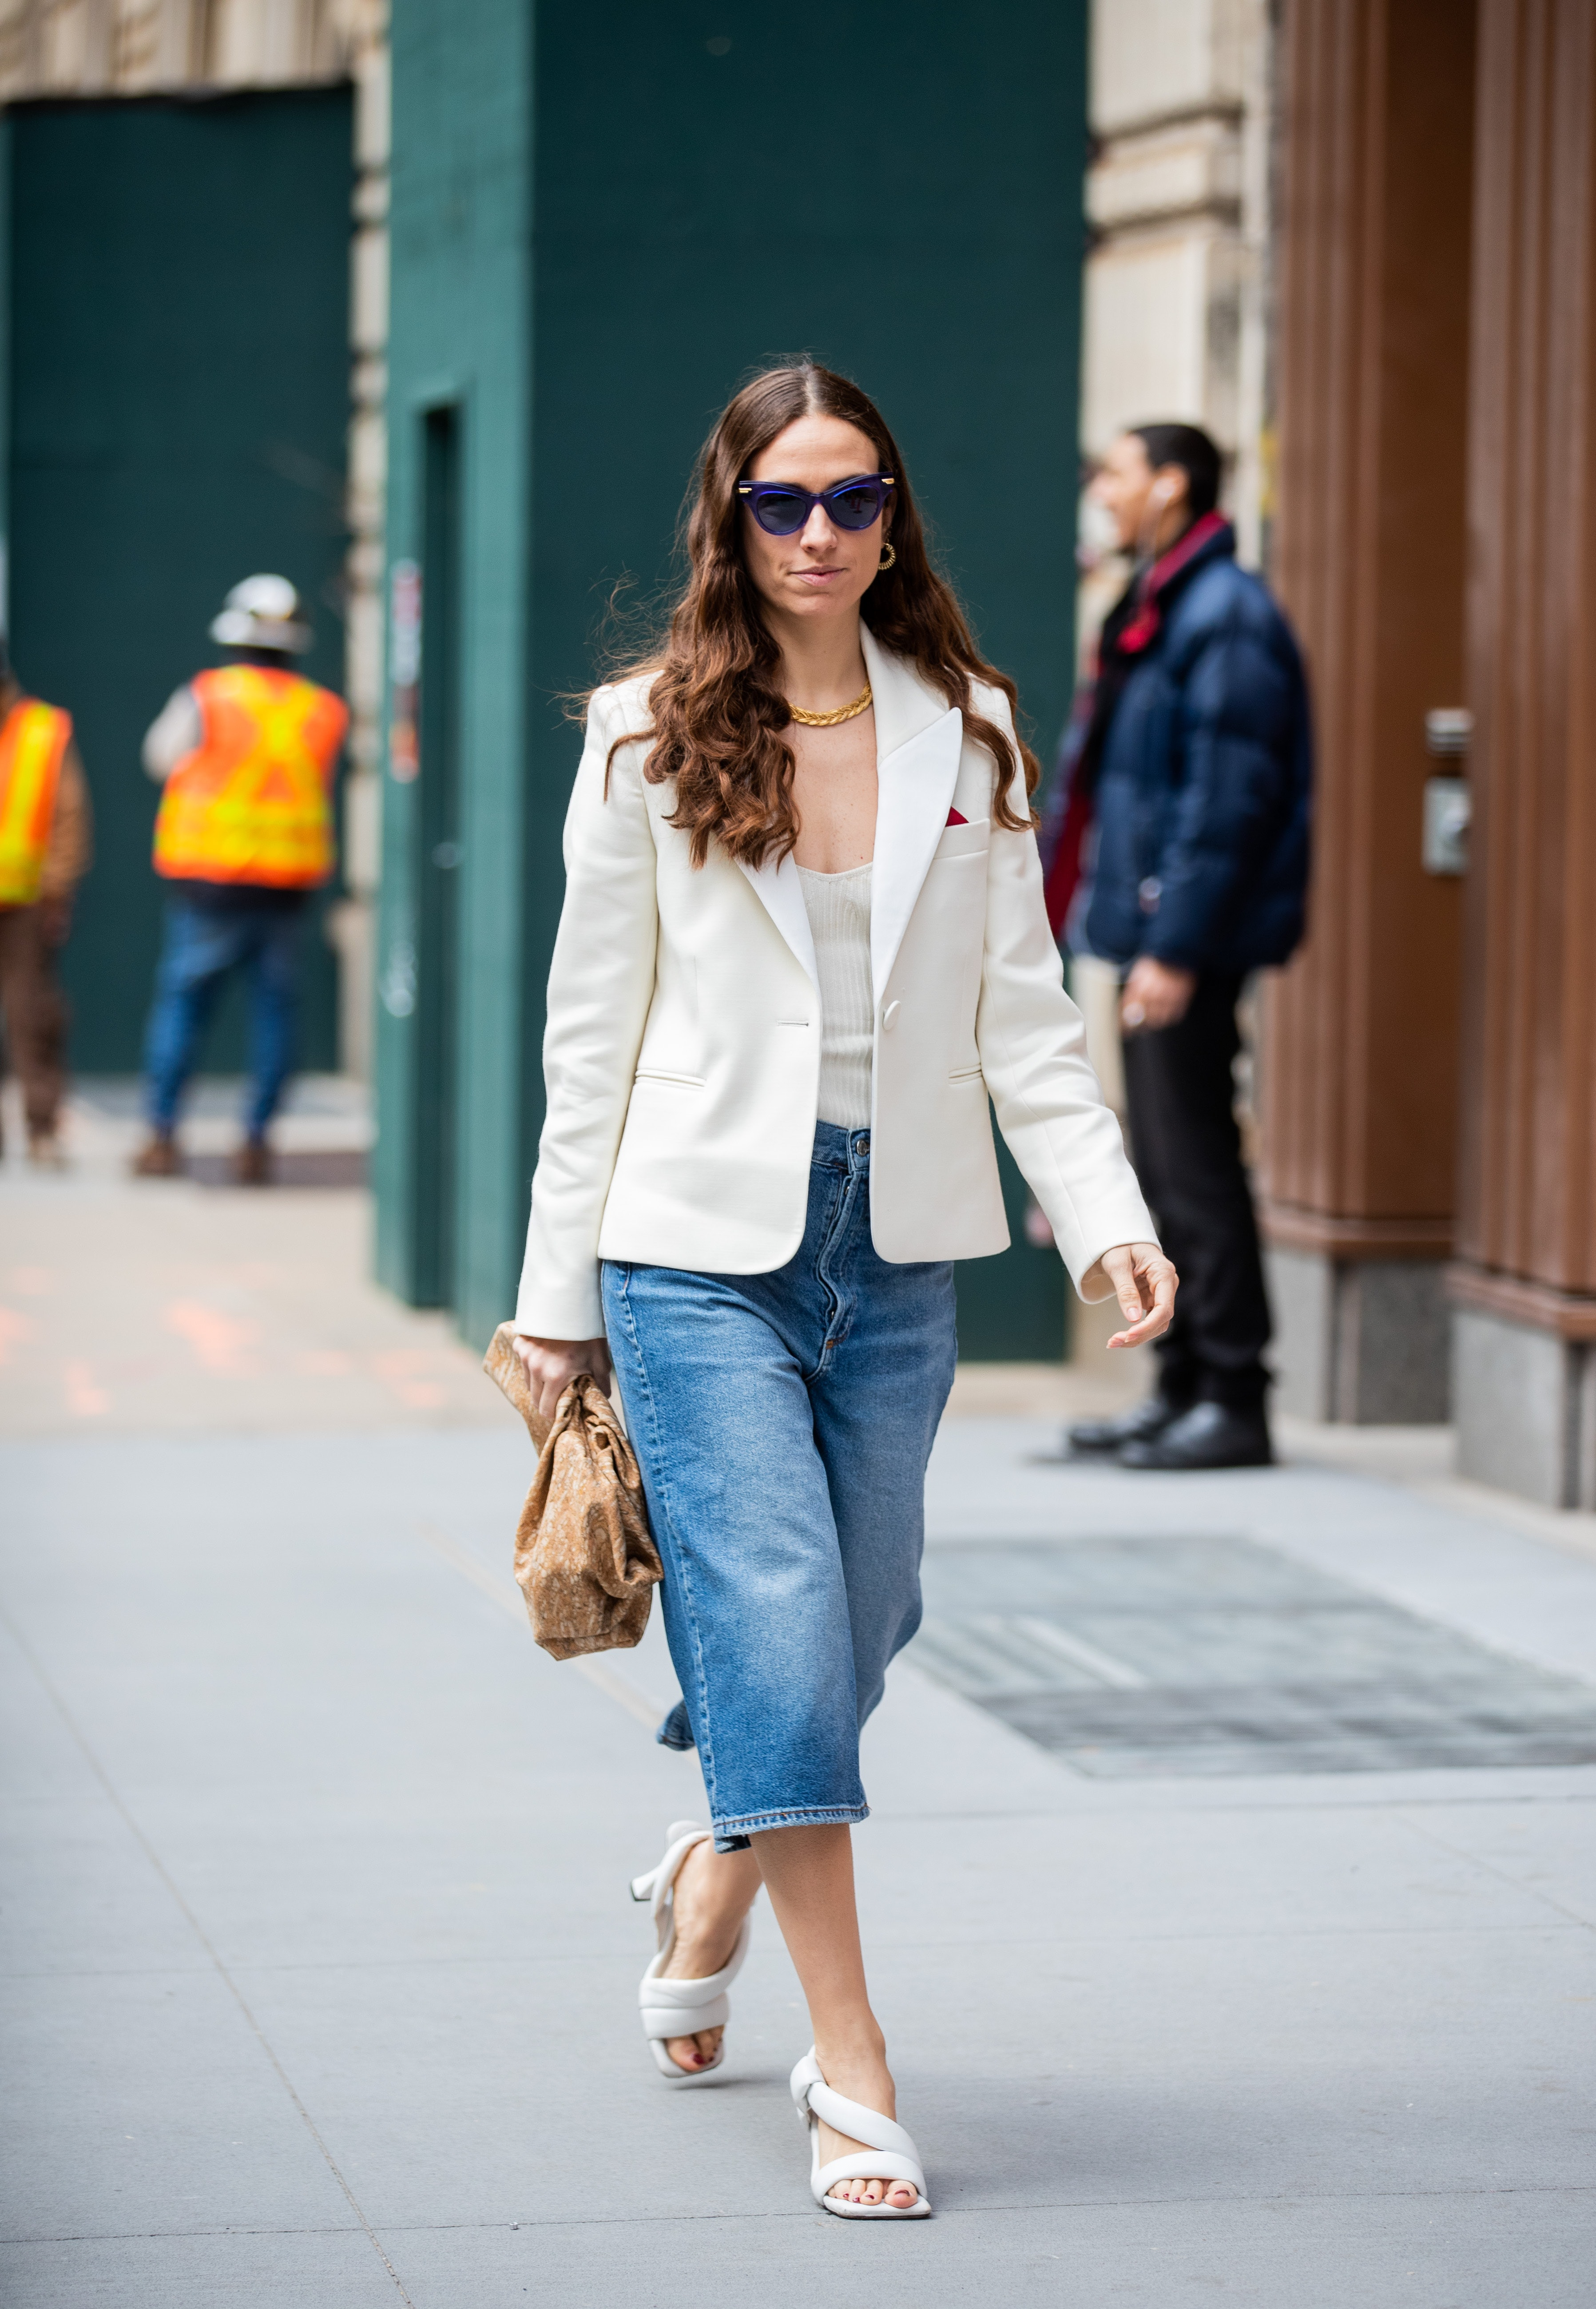 How To Wear Sandals With Jeans In 19